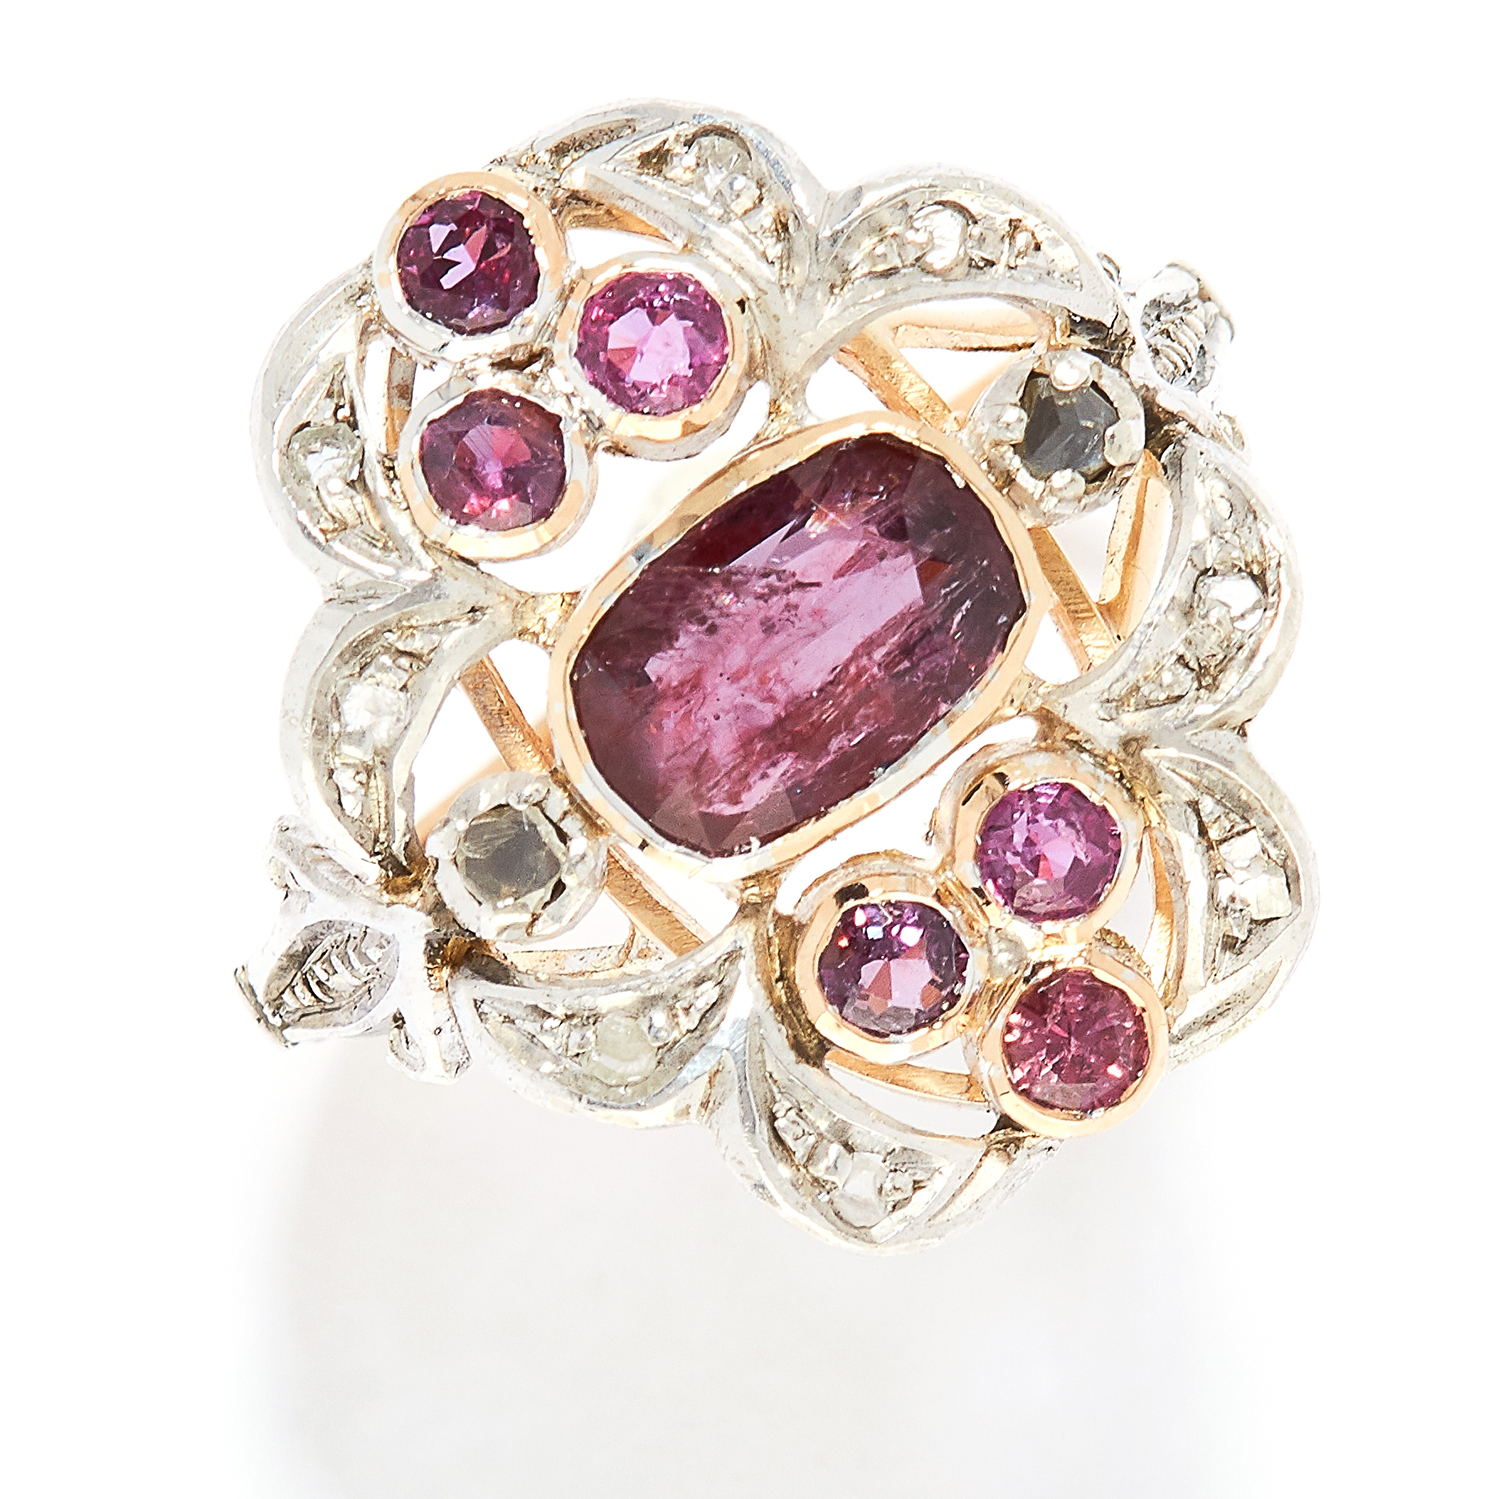 GARNET AND DIAMOND RING in yellow gold, in open scrolling design set with oval and round cut garnets